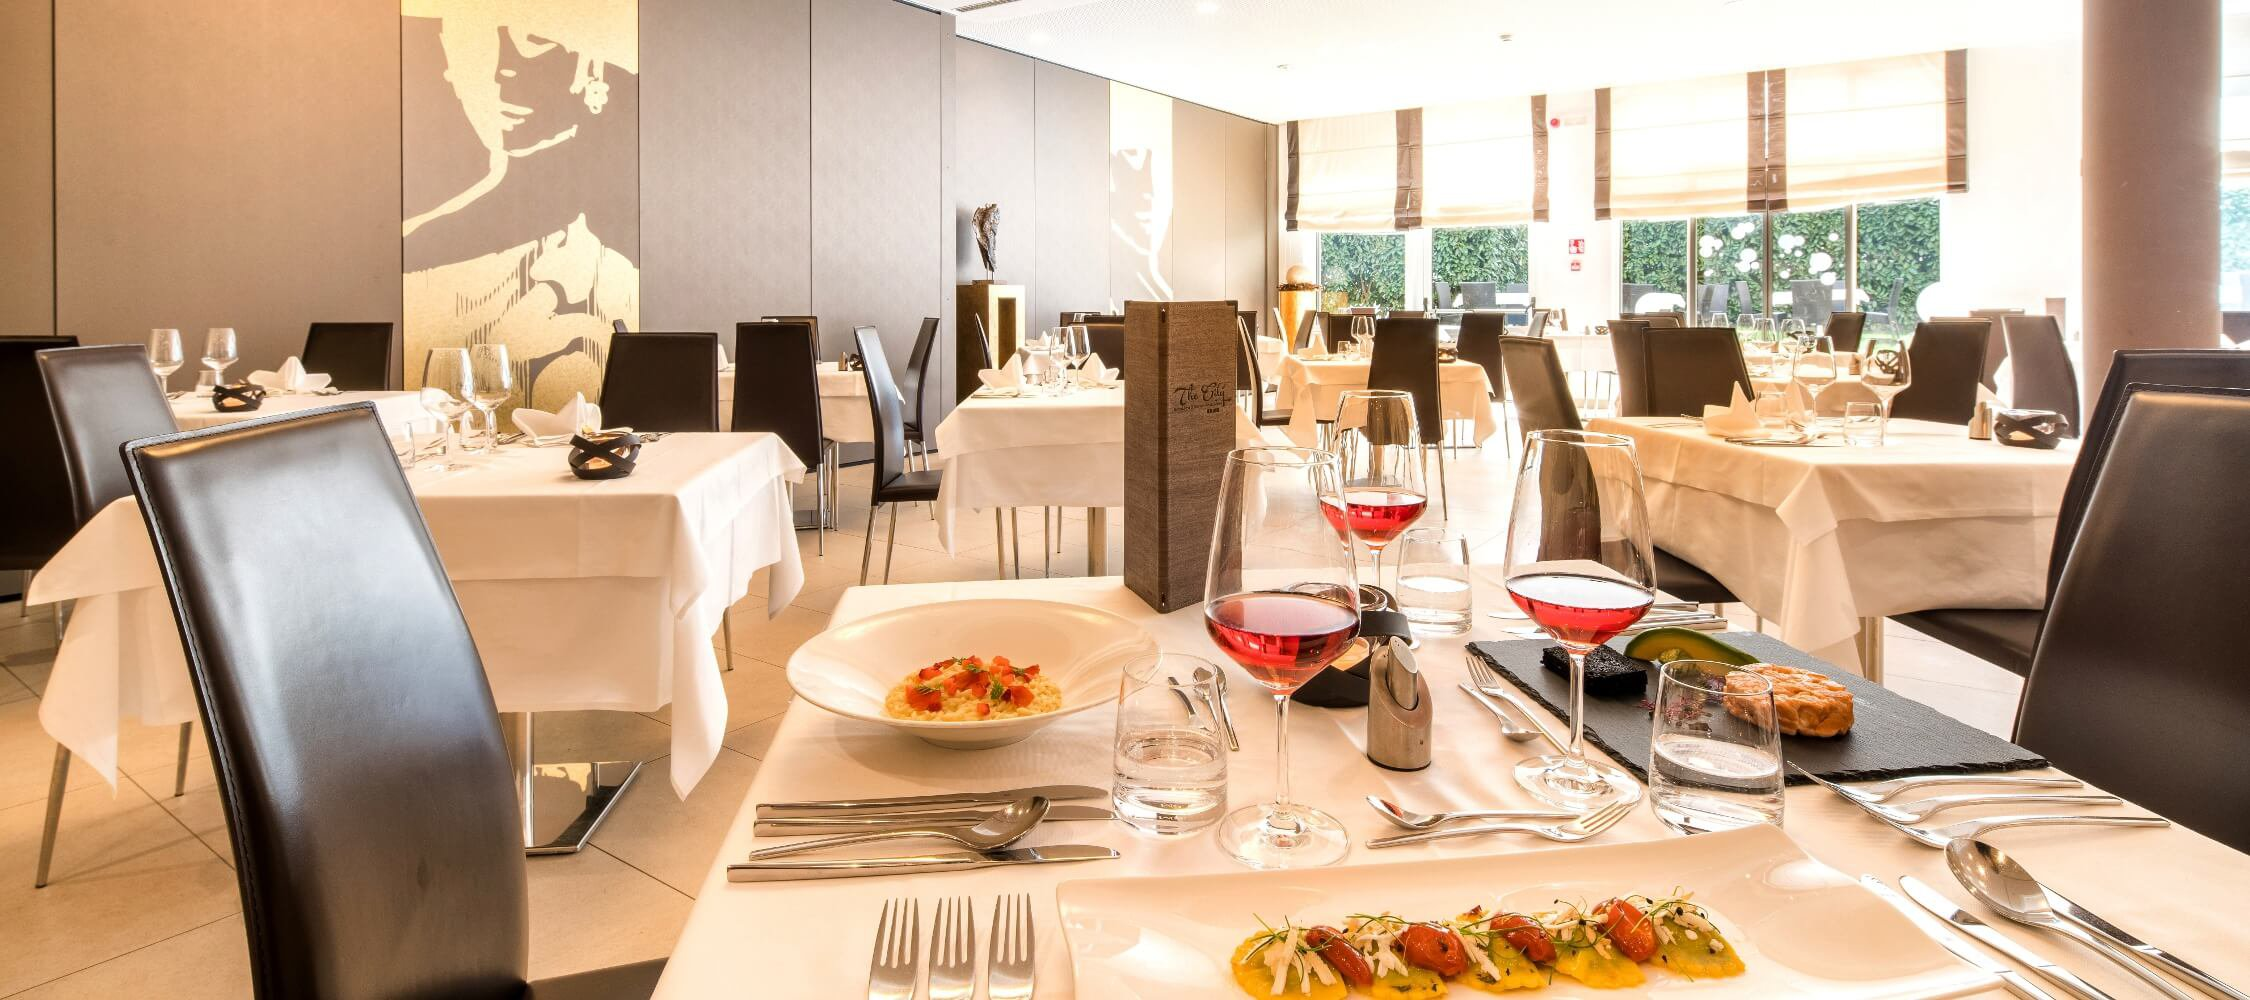 Ristorante Tapas Bar The Gallery City Hotel Merano, sala per 112 persone